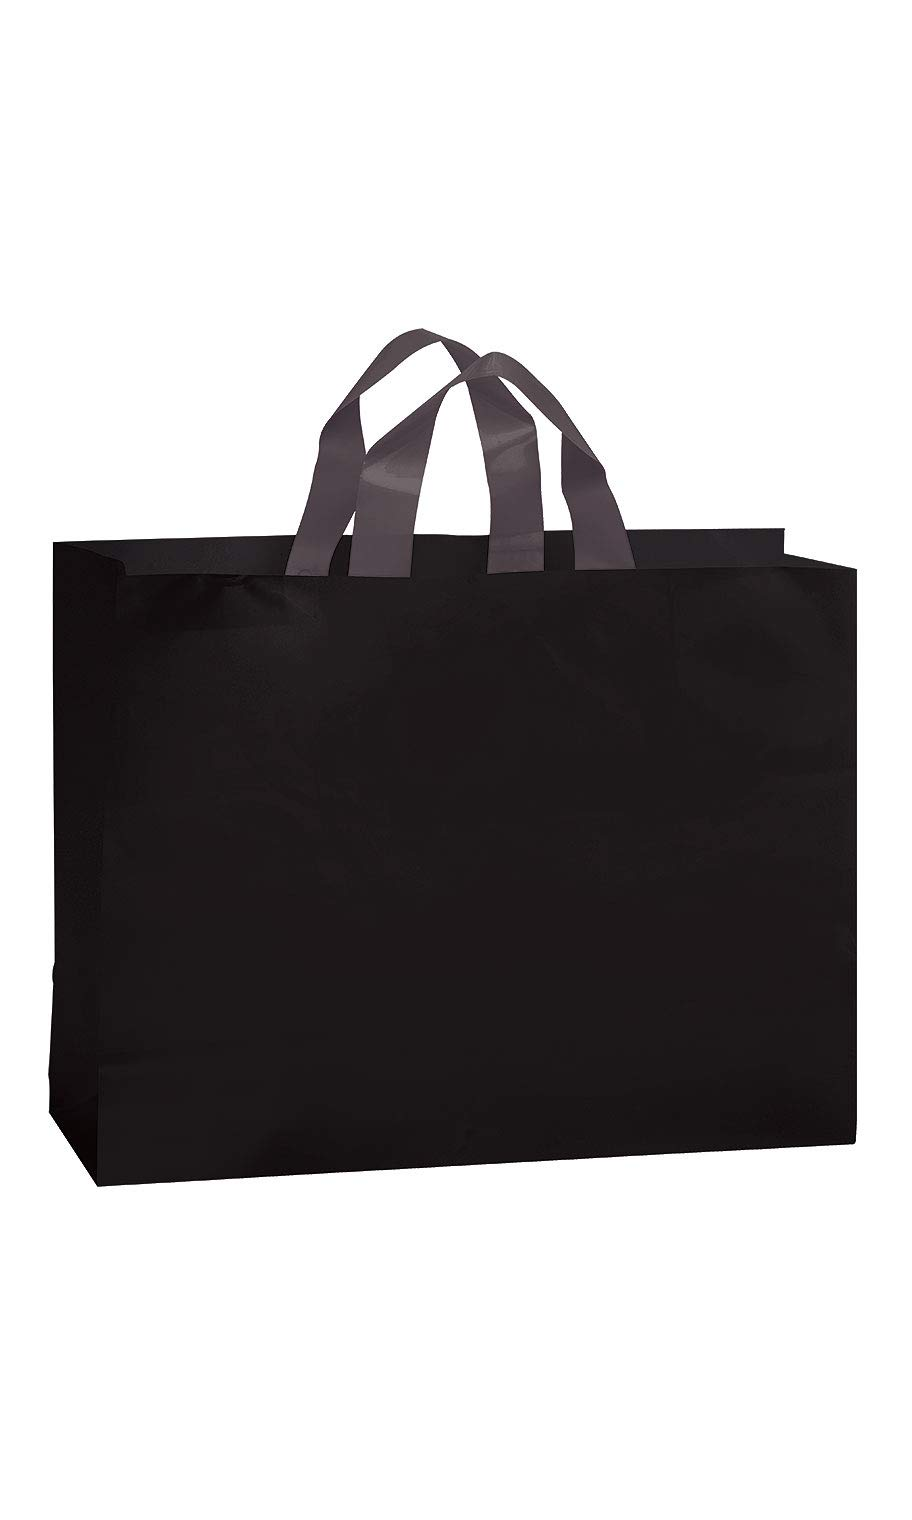 SSWBasics Large Black Frosted Plastic Shopping Bags - 16'' x 6'' x 12'' - Case of 100